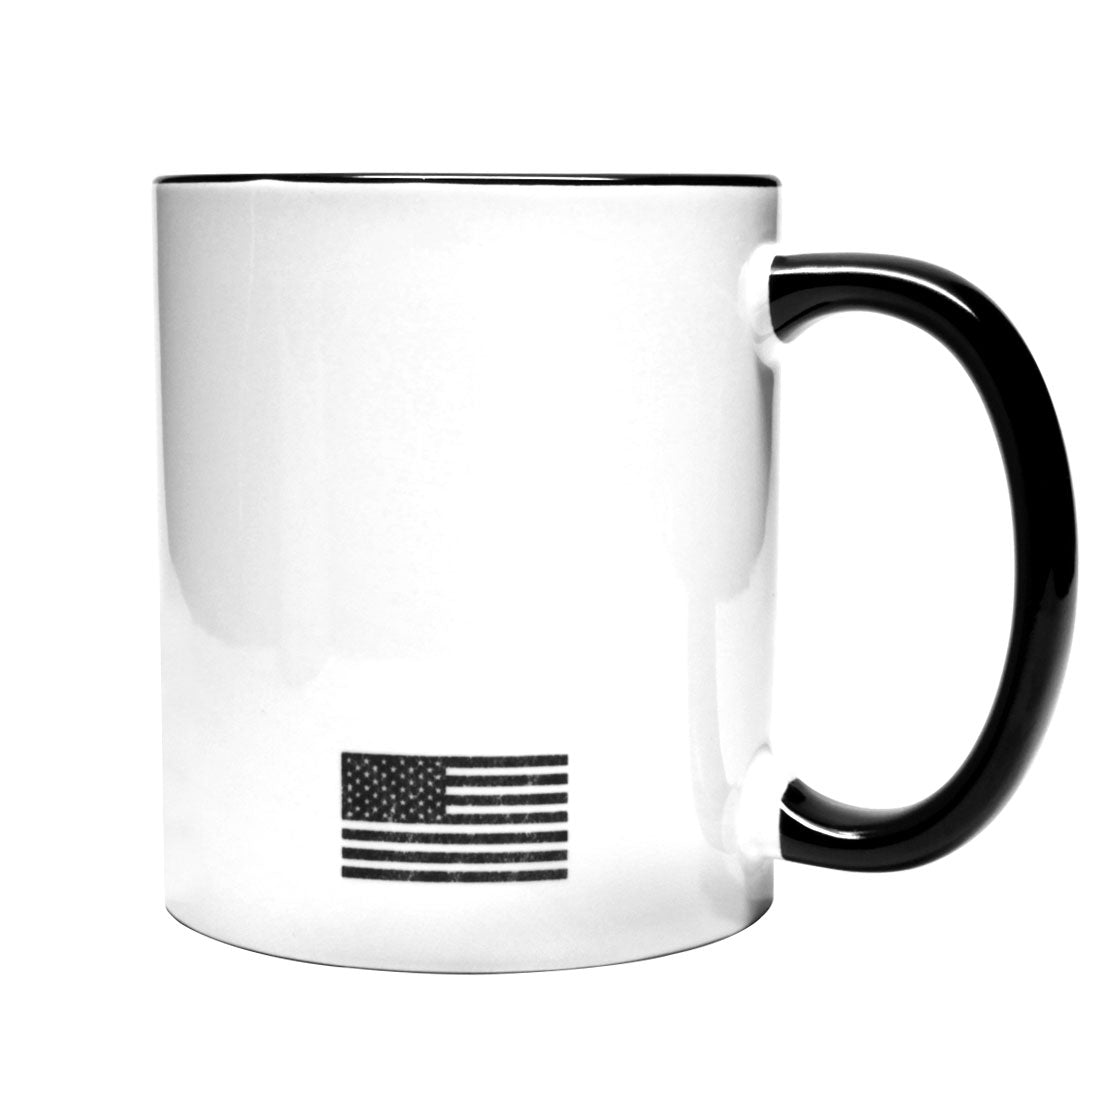 Don't tread on me Liquid Militia Coffee Mug with American Flag